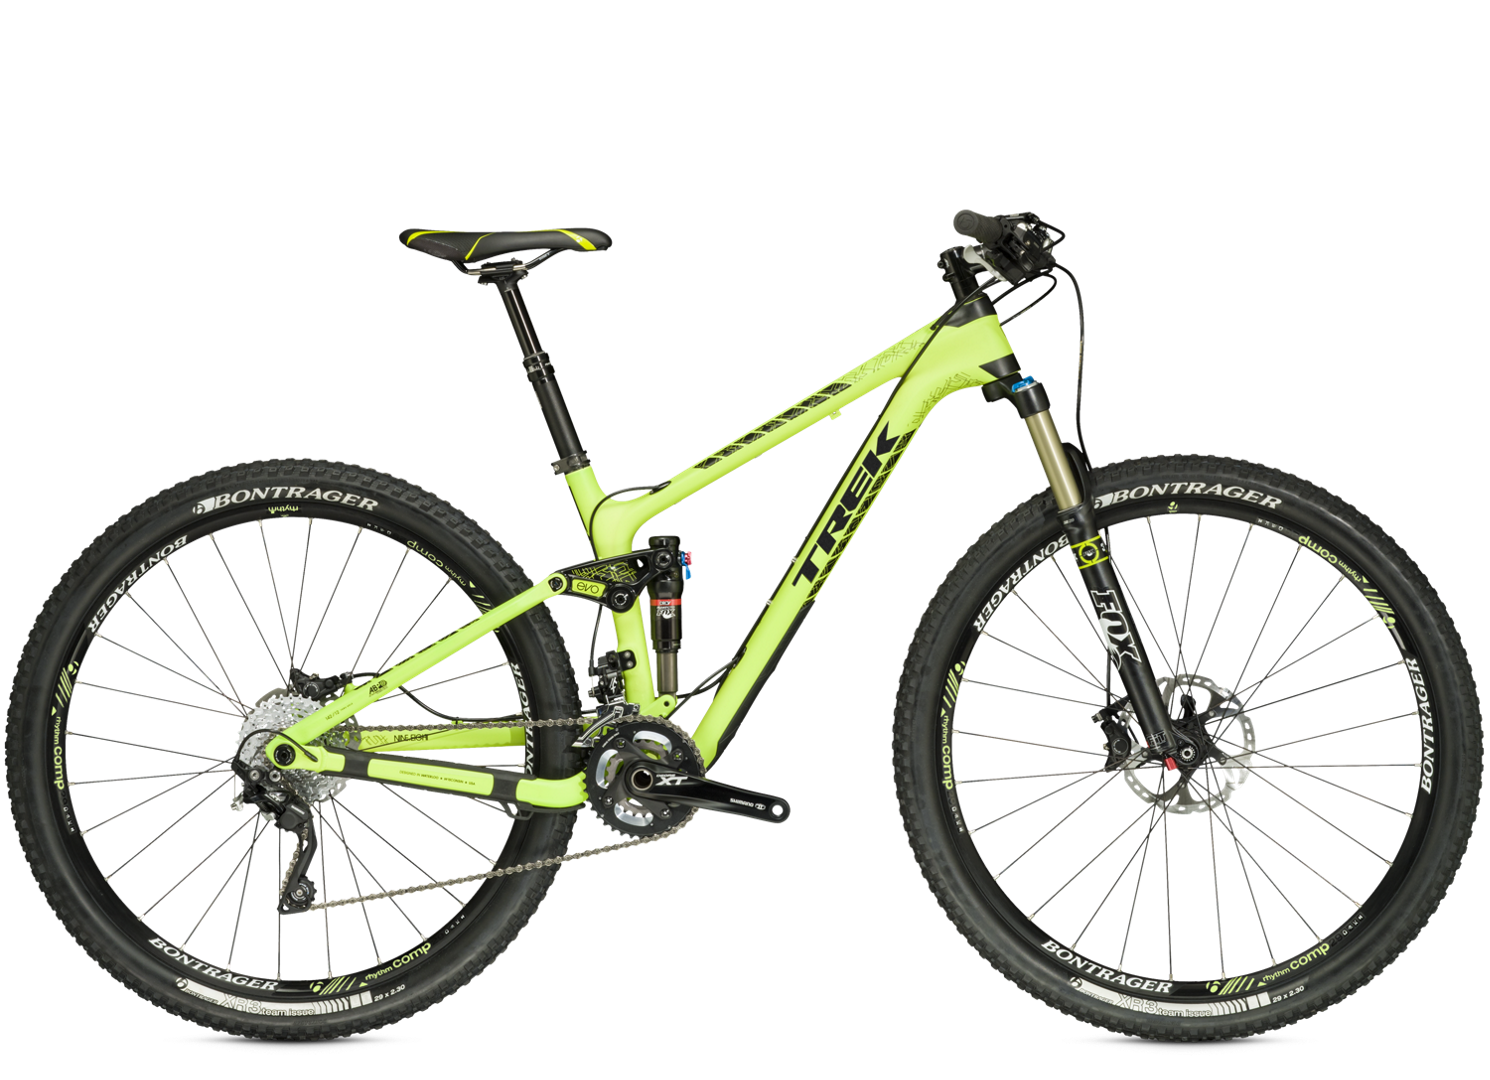 The 8 Best Mountain Bikes to Buy in 2019 The 8 Best Mountain Bikes to Buy in 2019 new foto